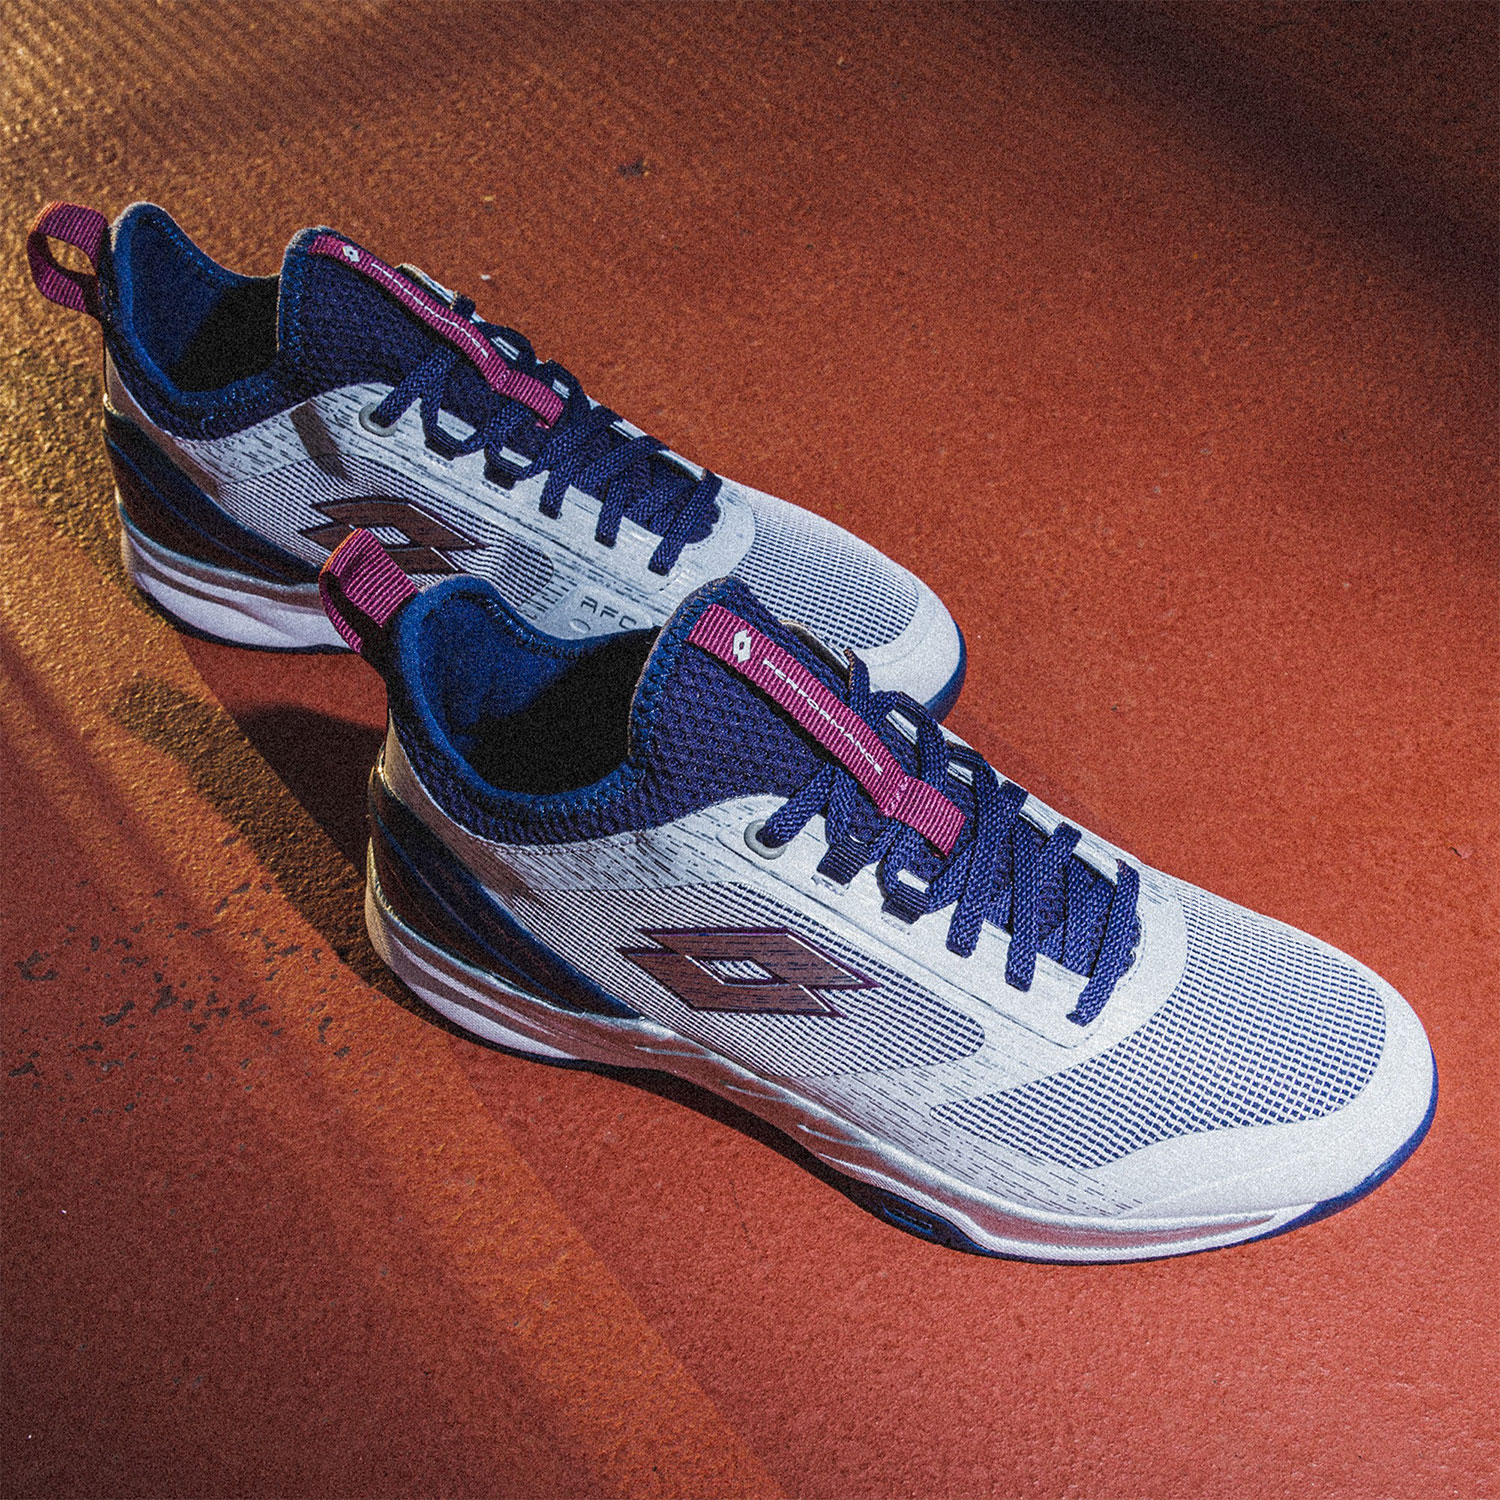 Lotto Mirage 200 Speed - All White/Navy Blue/Muave Wine